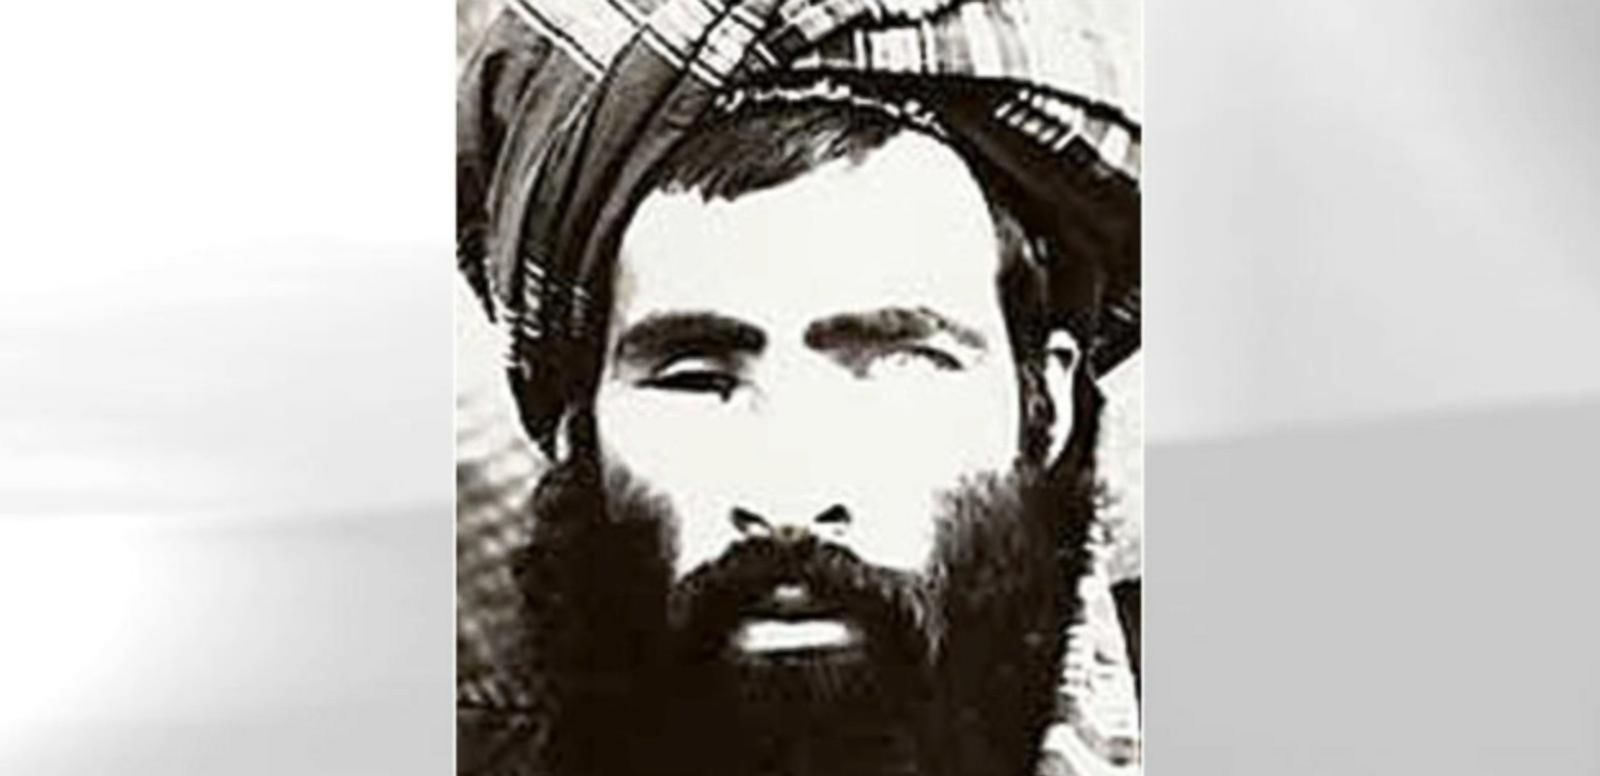 VIDEO: Afghan officials confirmed the death of top Taliban leader Mullah Omar in Pakistan back in 2013. ABC News' Terry Moran reports.